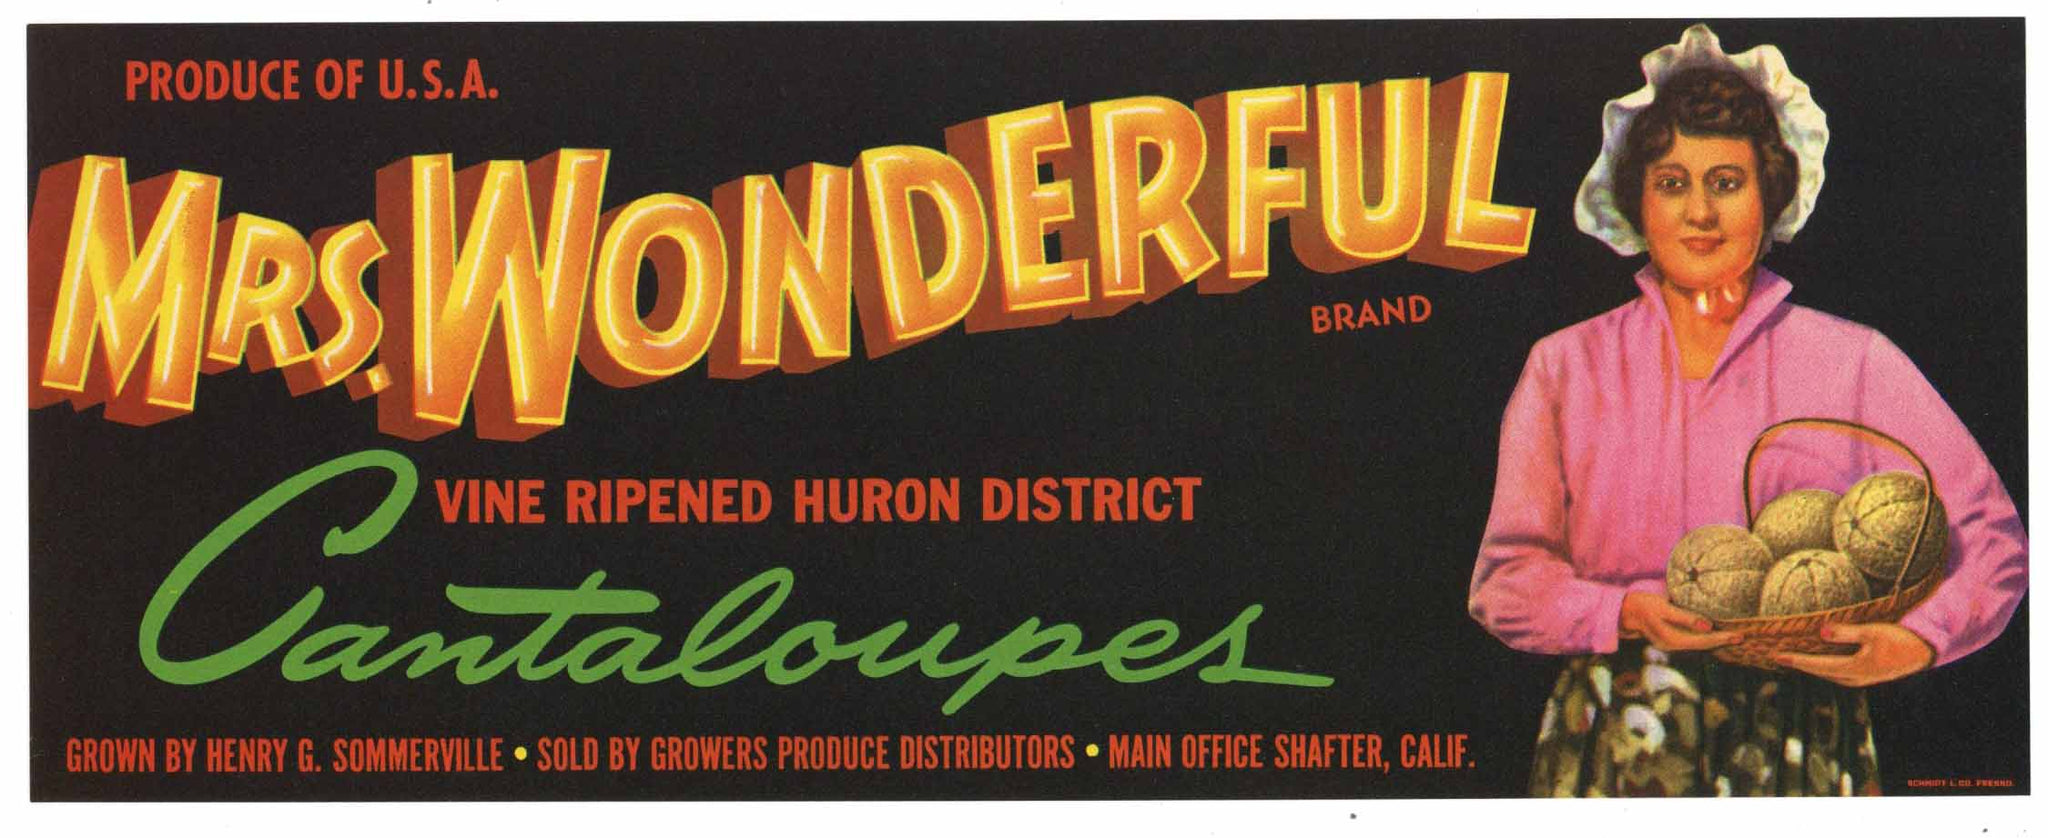 Mrs. Wonderful Brand Vintage Melon Crate Label